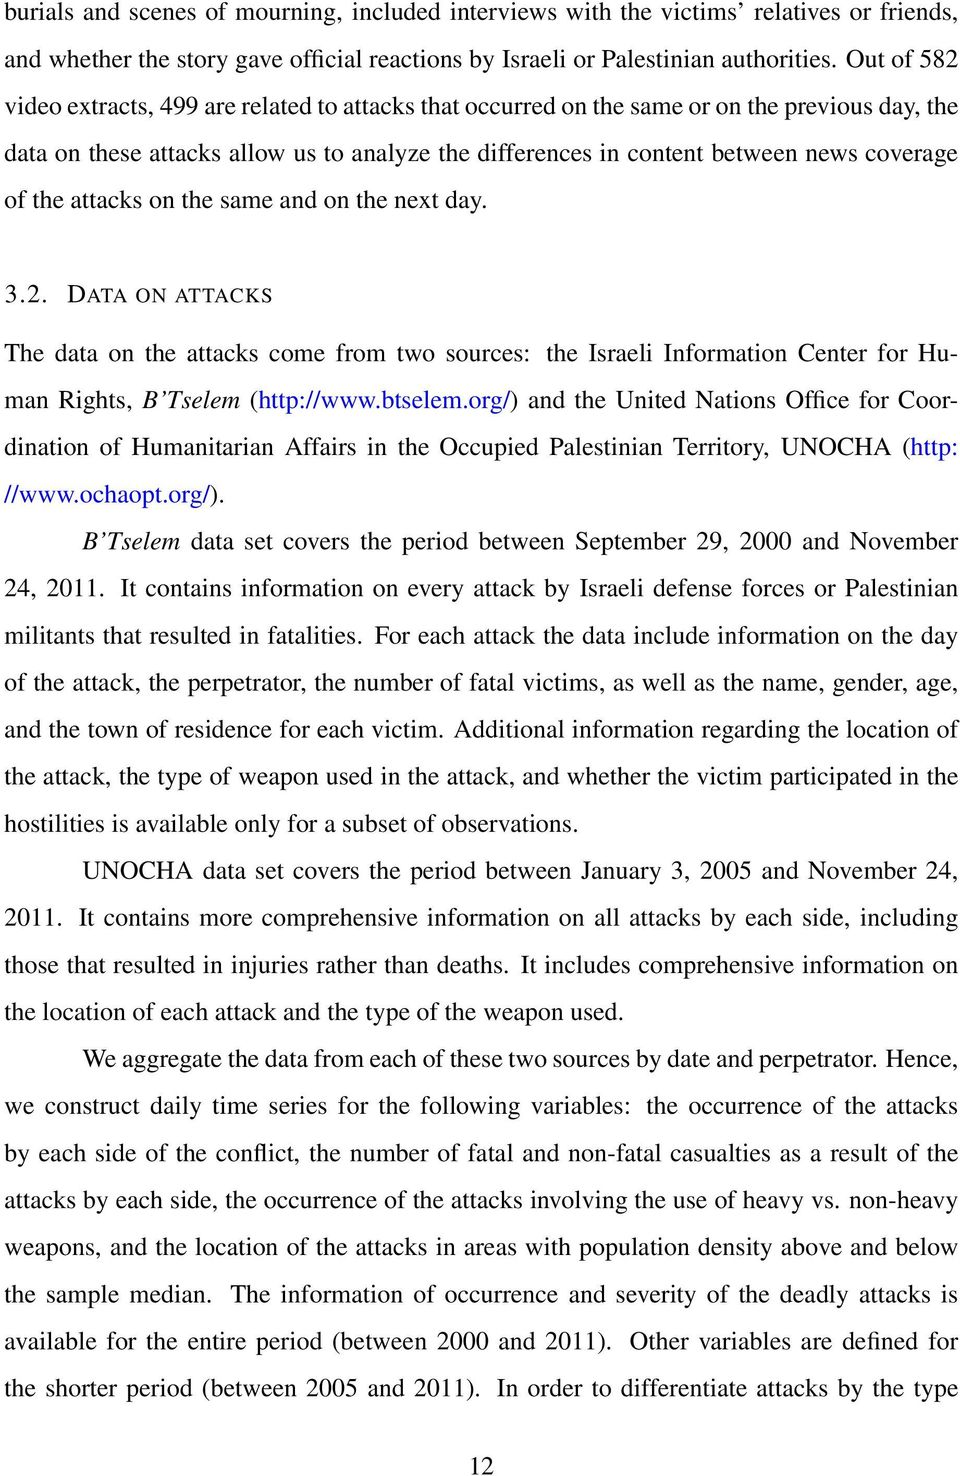 of the attacks on the same and on the next day. 3.2. DATA ON ATTACKS The data on the attacks come from two sources: the Israeli Information Center for Human Rights, B Tselem (http://www.btselem.